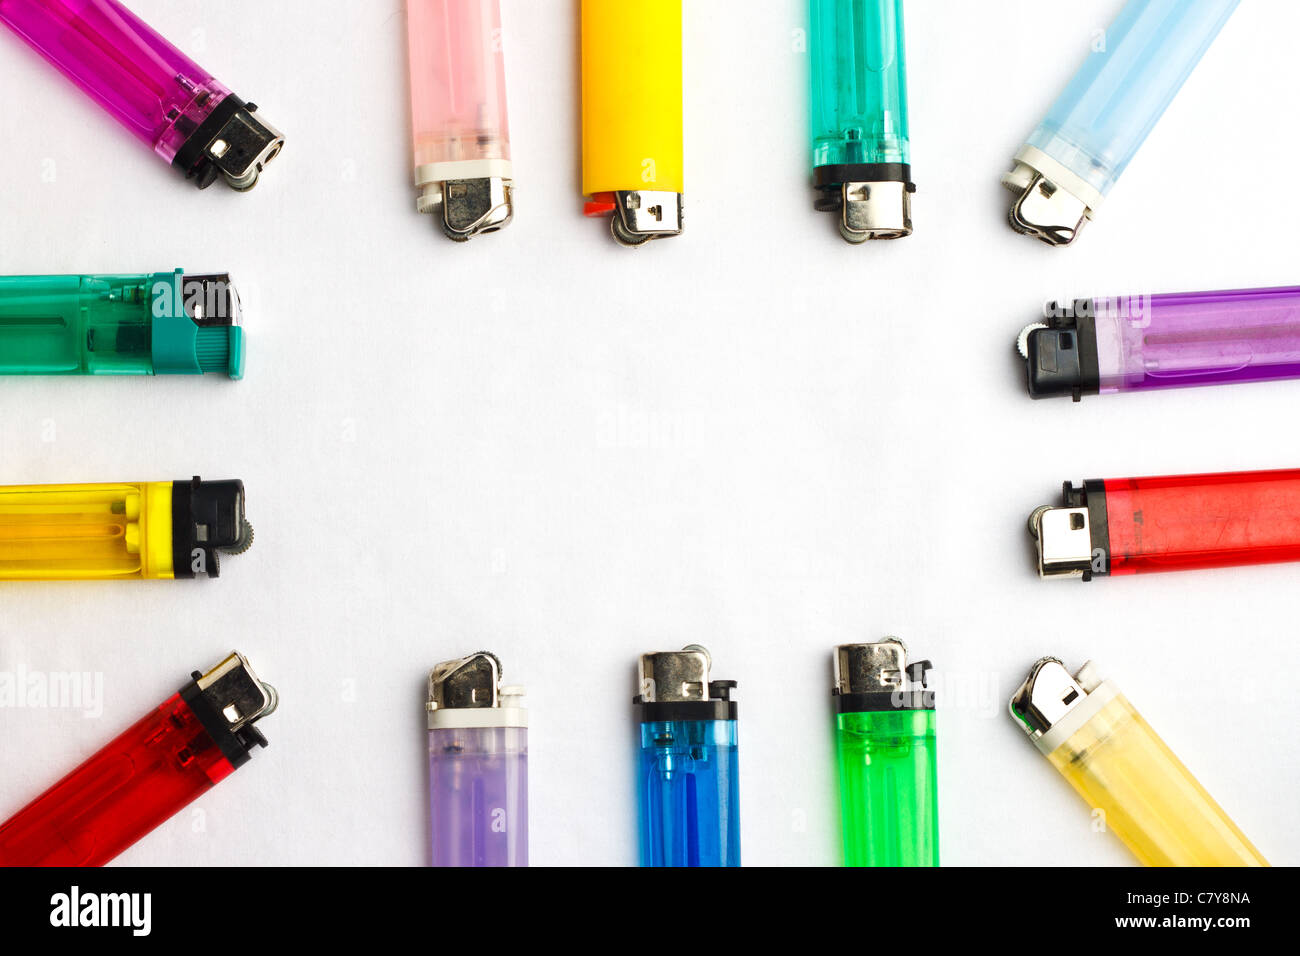 Colorful assortment of disposable lighters bordering a white background - Stock Image